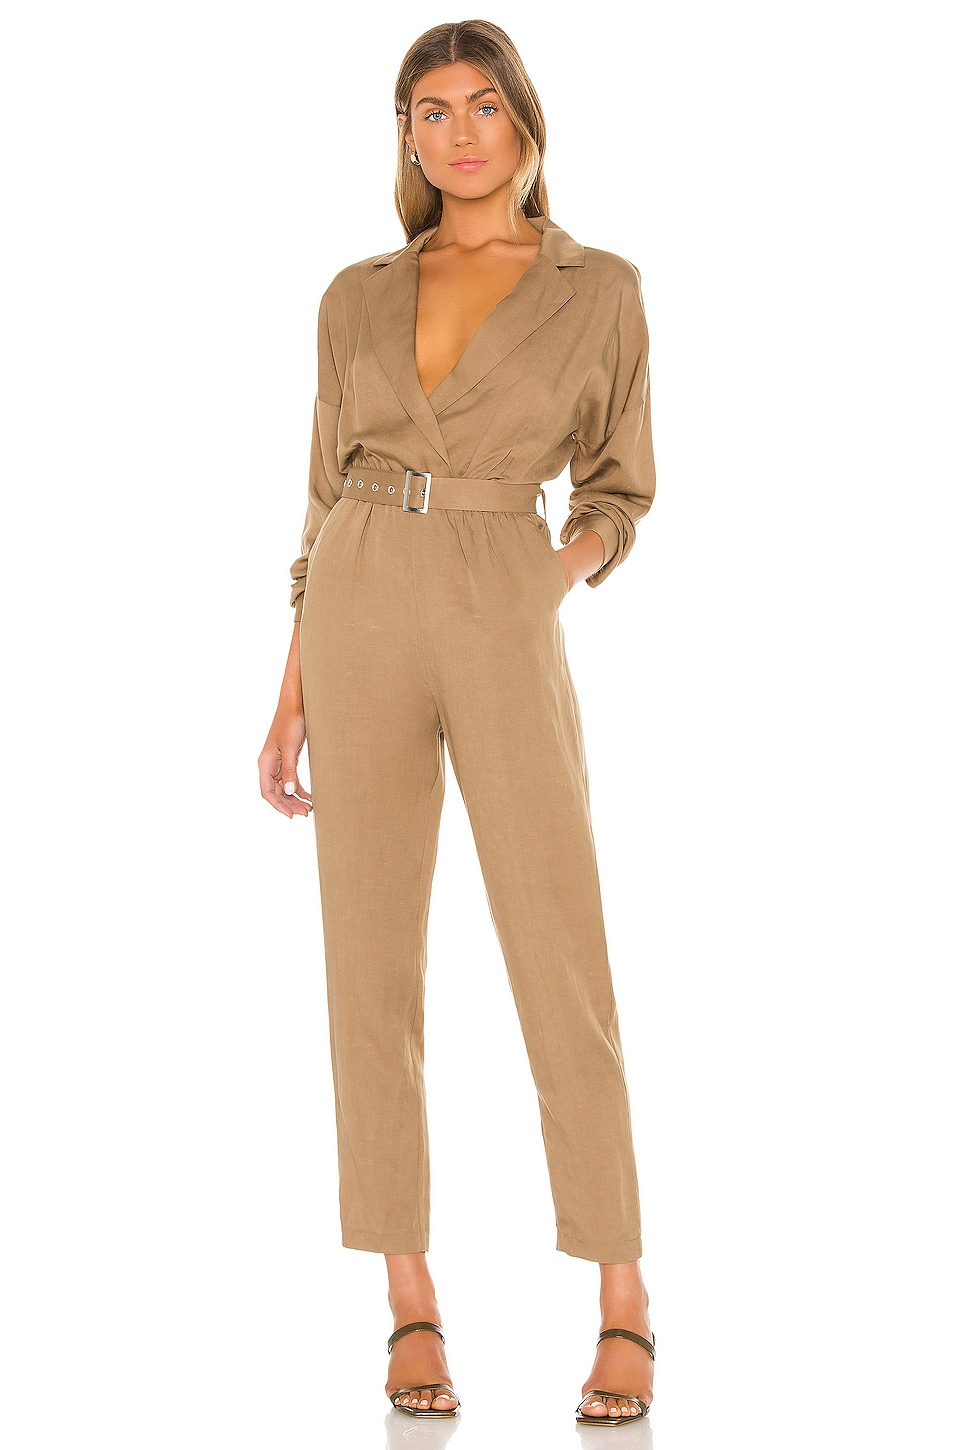 L'Academie Reed Jumpsuit in Khaki